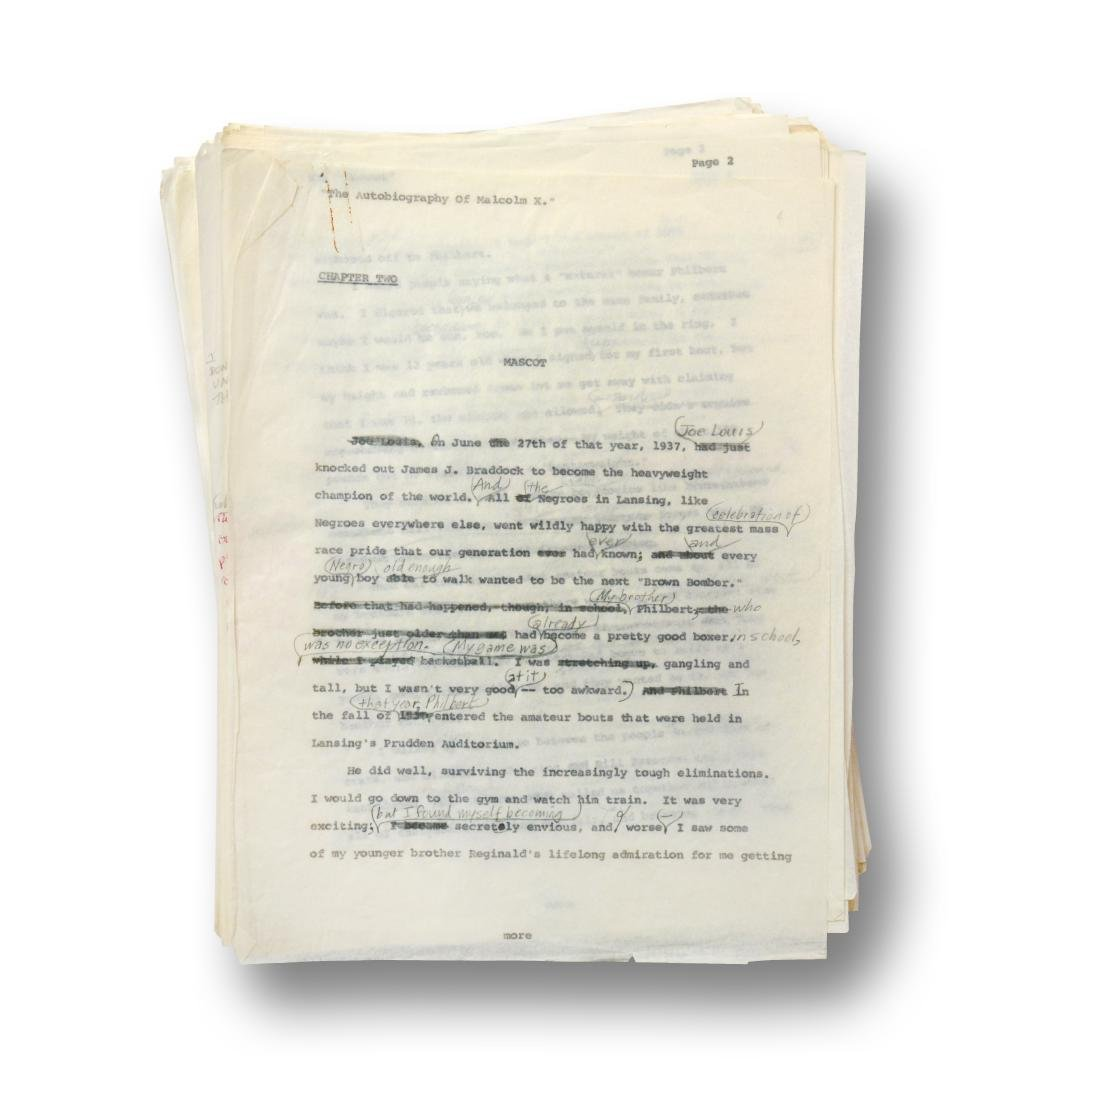 Malcolm X Manuscript, notes by Malcolm X and Alex Haley - 8